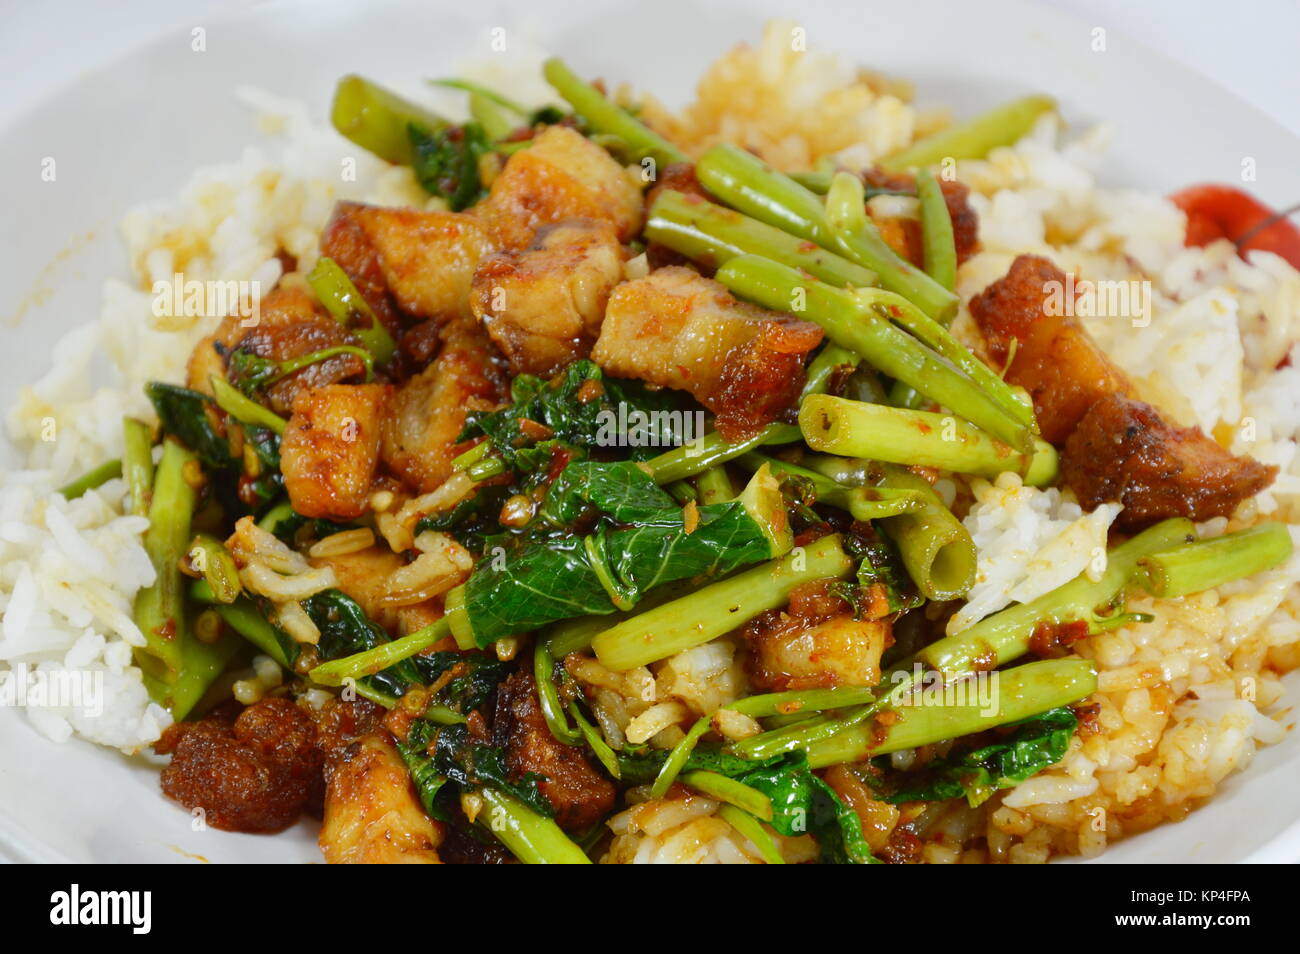 stir fried morning glory with crispy pork curry topping on plain